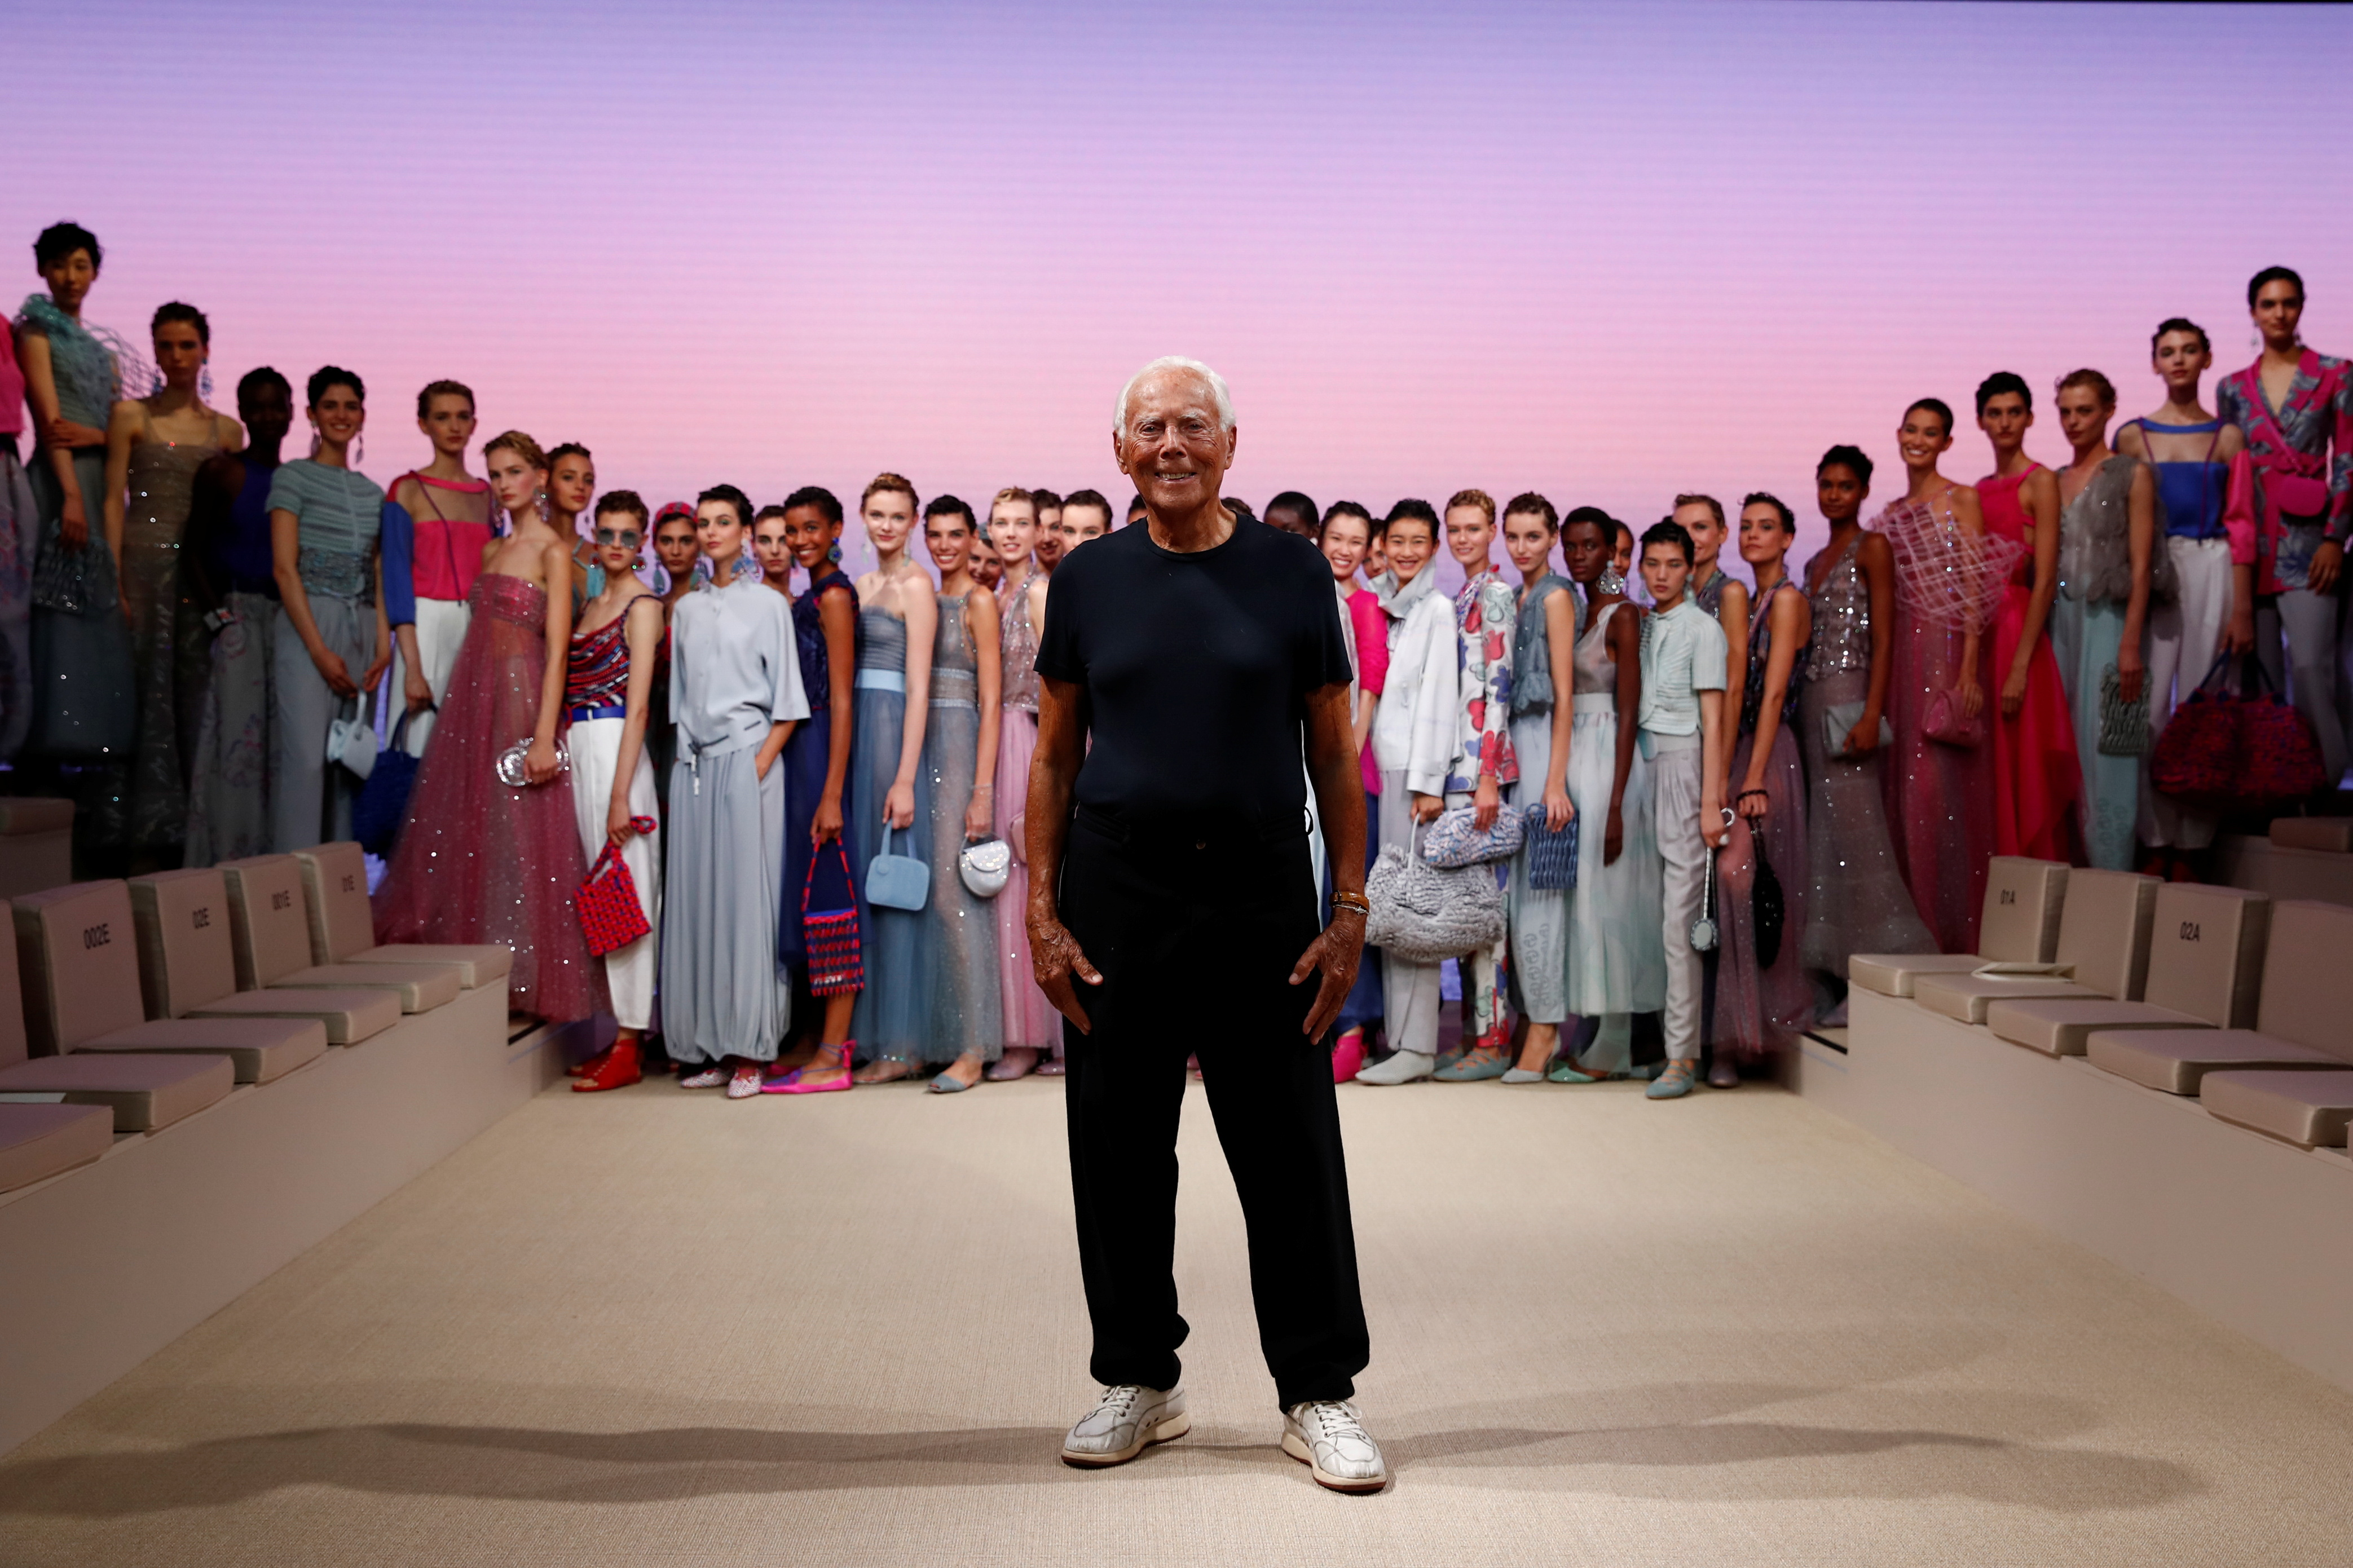 Designer Giorgio Armani appears with models at the end of the Giorgio Armani Spring/Summer 2022 collection during Milan Fashion Week in Milan, Italy, September 25, 2021. REUTERS/Alessandro Garofalo